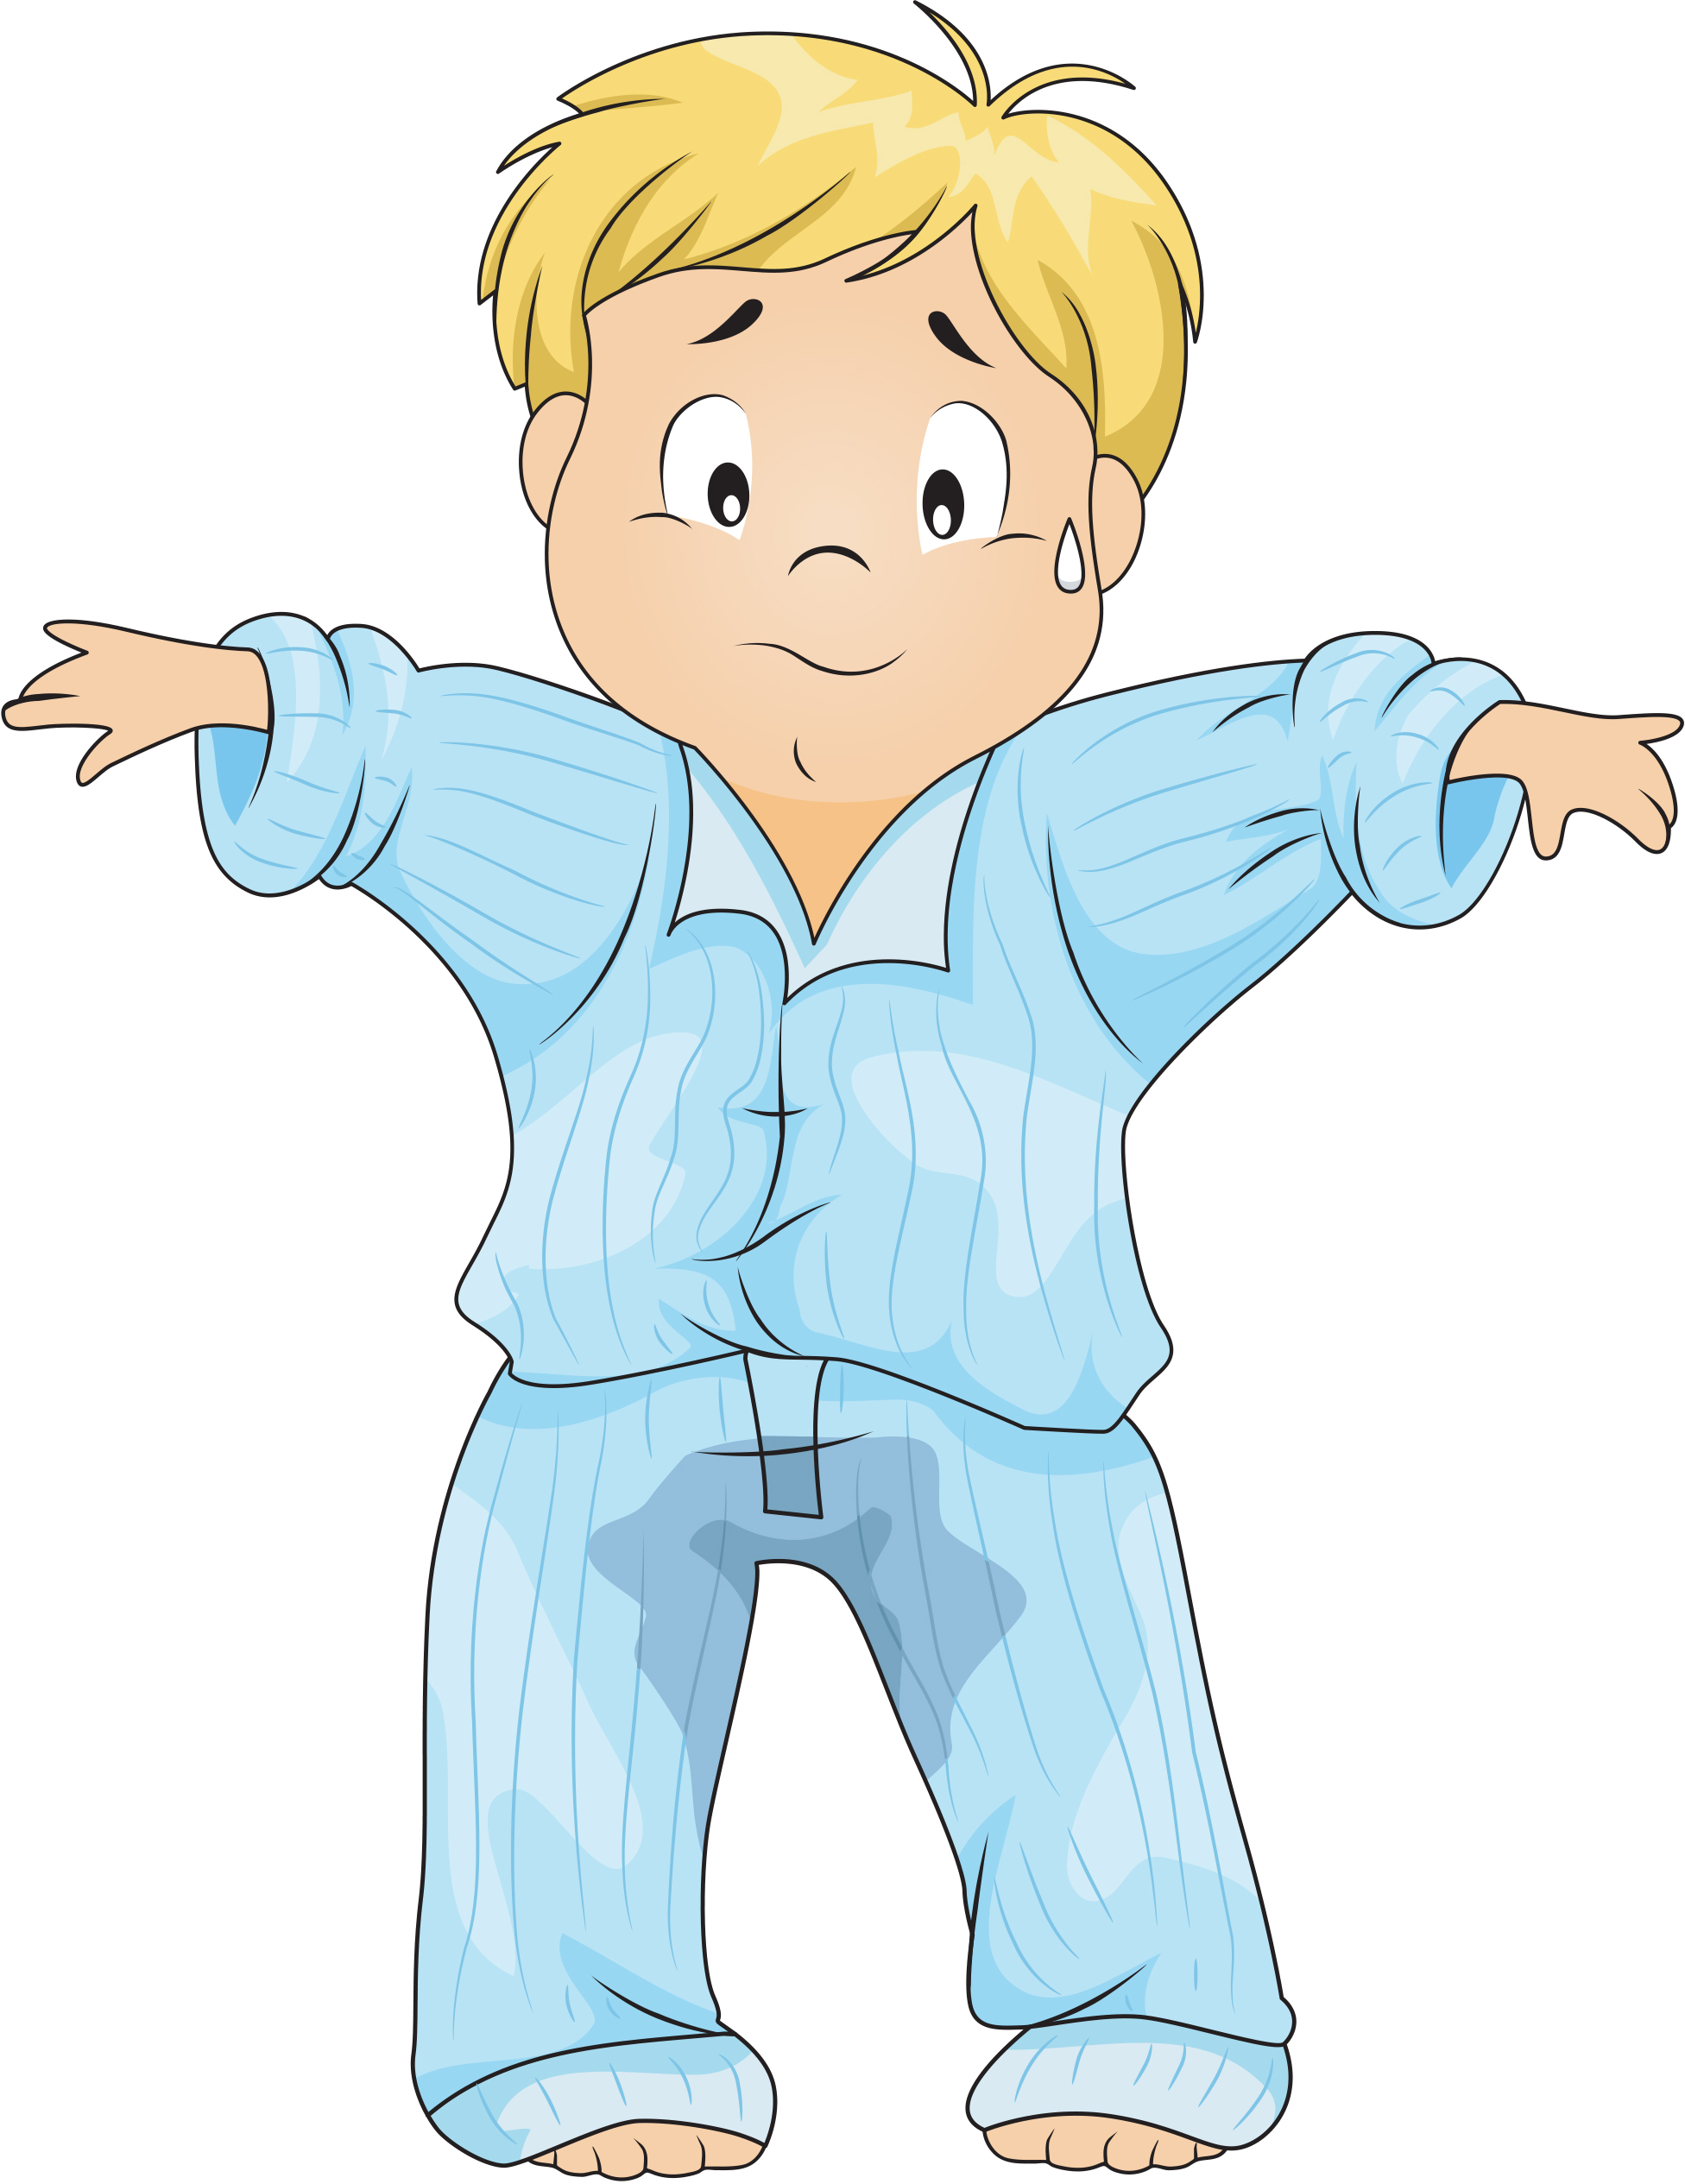 hectic david parents blog dr palmiter bedwetting bed enuresis for wetting s tag